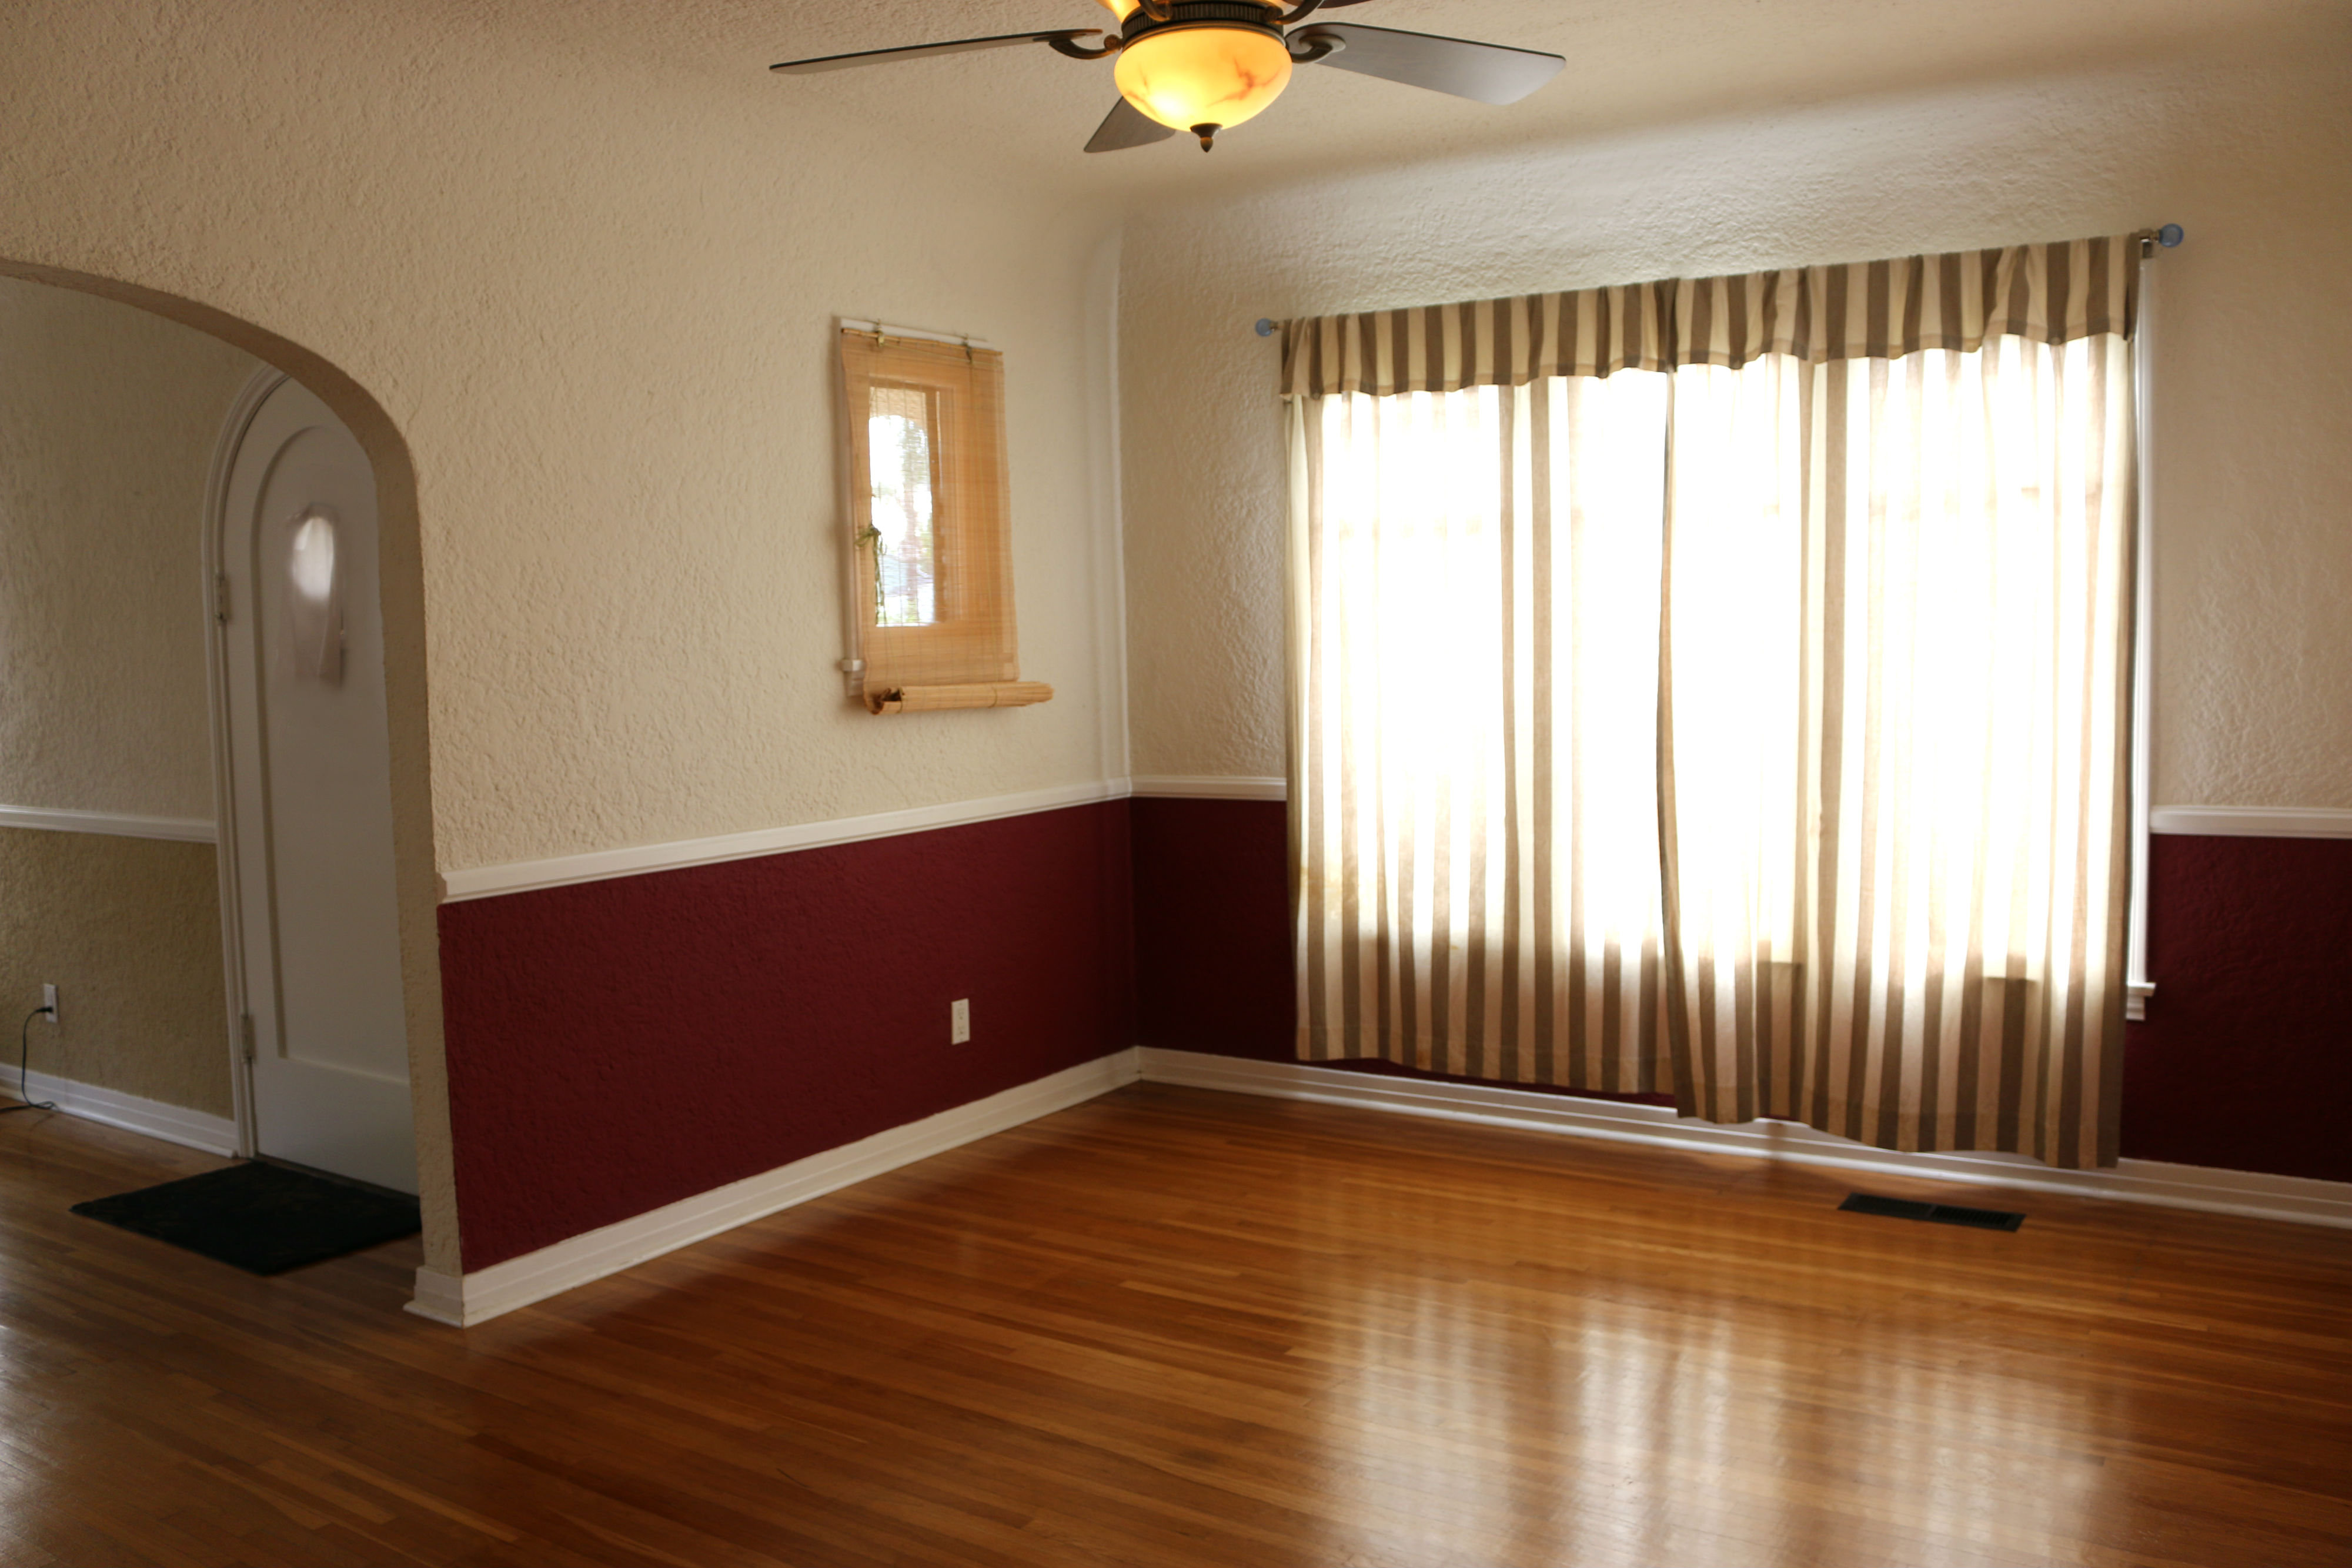 Coved Ceiling In Formal Dining Room With Fan And Gorgeous Hardwood Floors